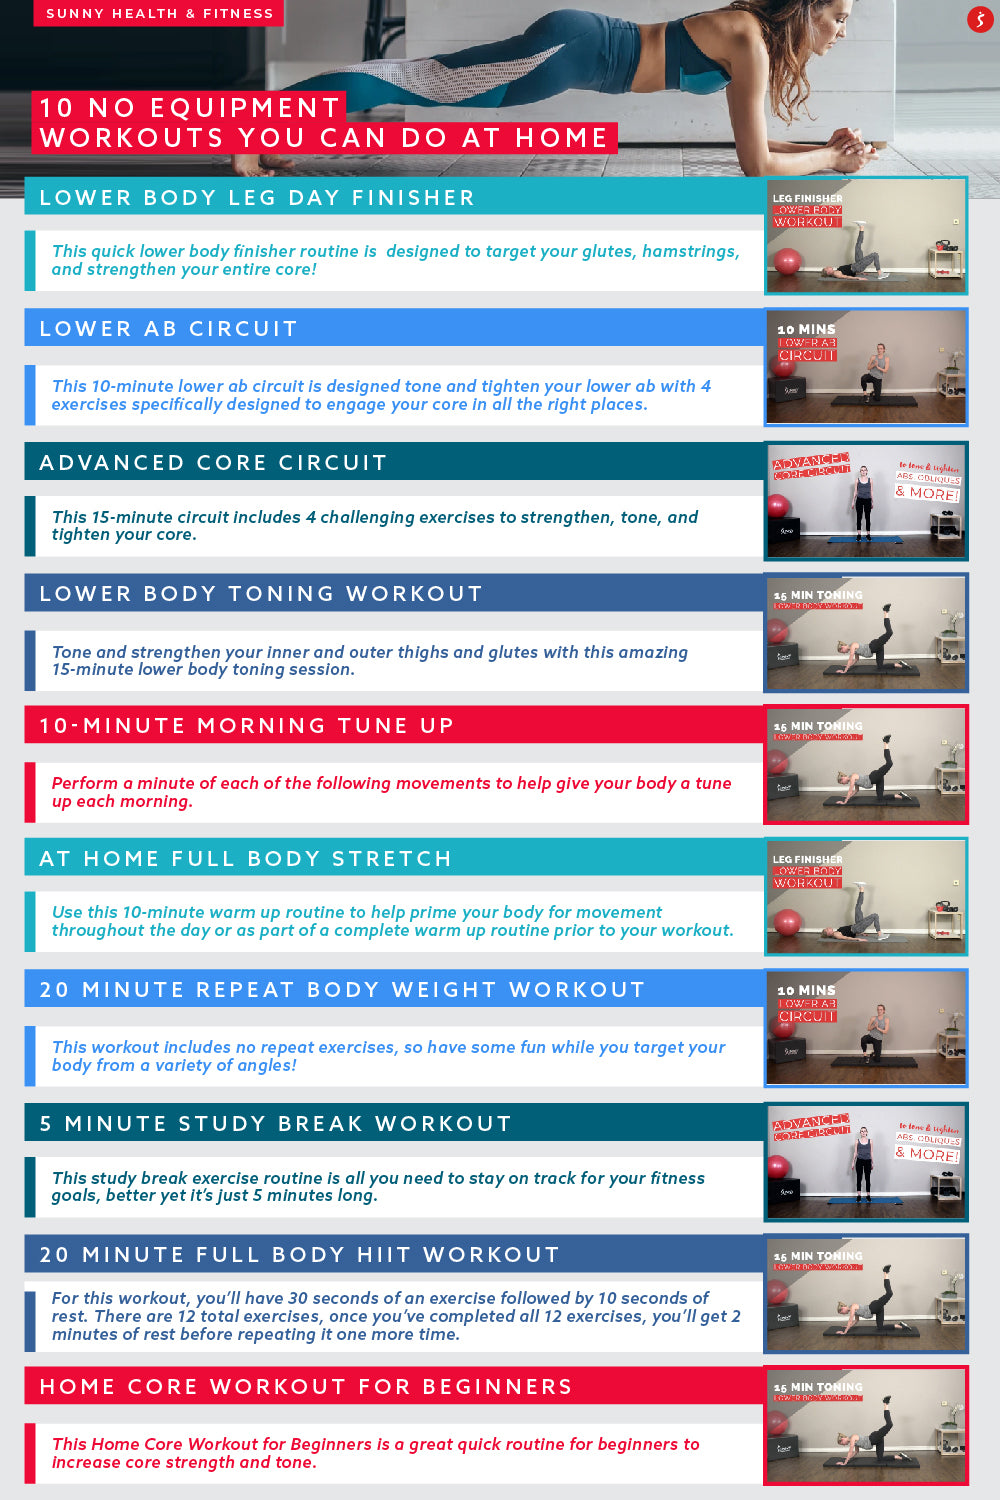 10 No Equipment At Home Workouts Infographic